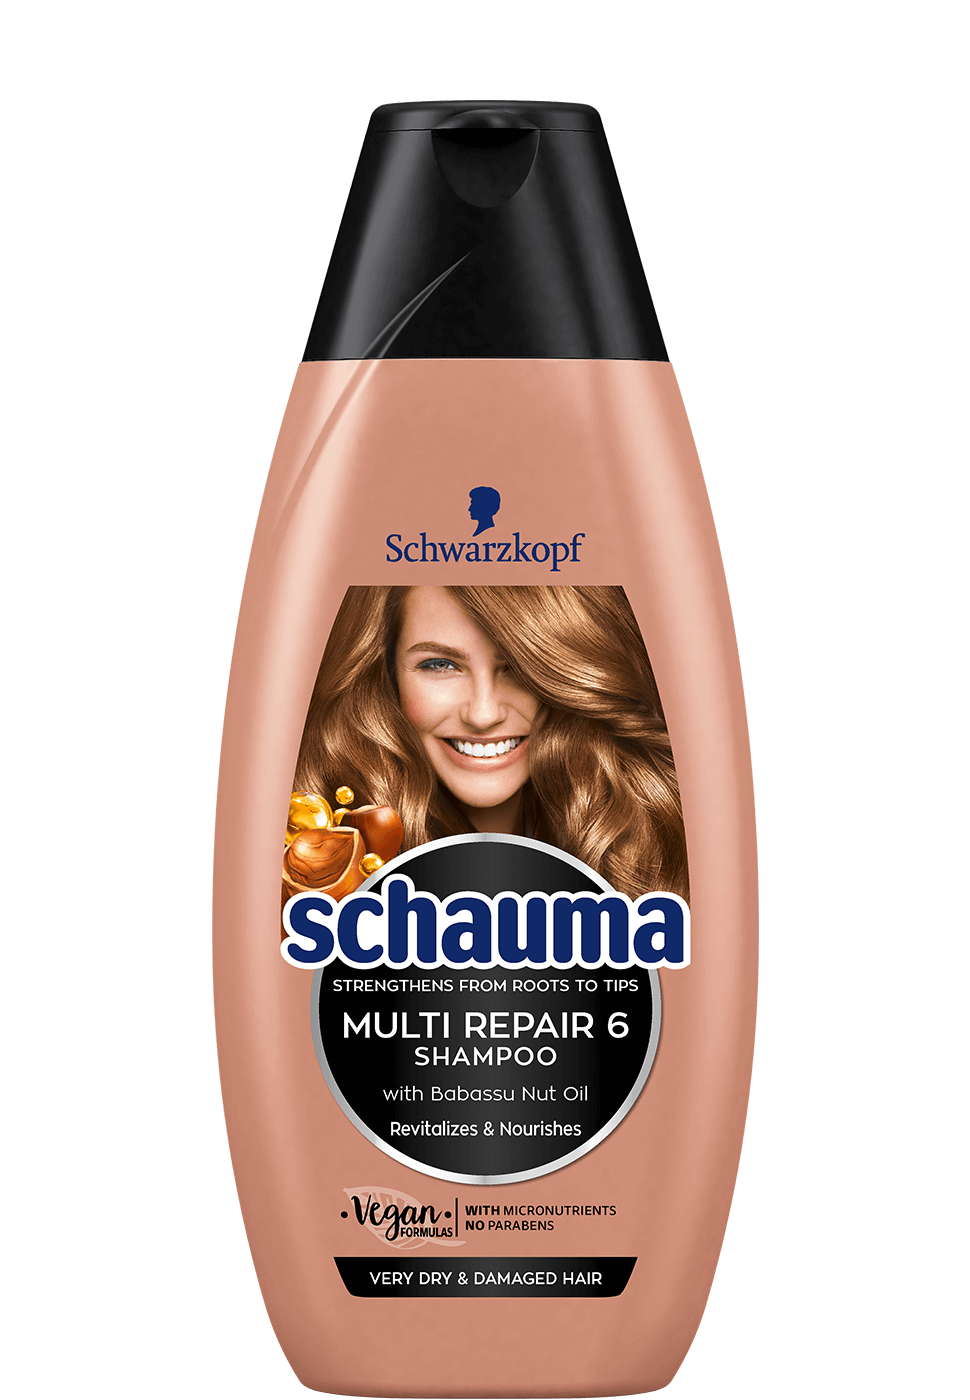 schauma_de_6_in_1_repair_1_minute_shampoo_970x1400